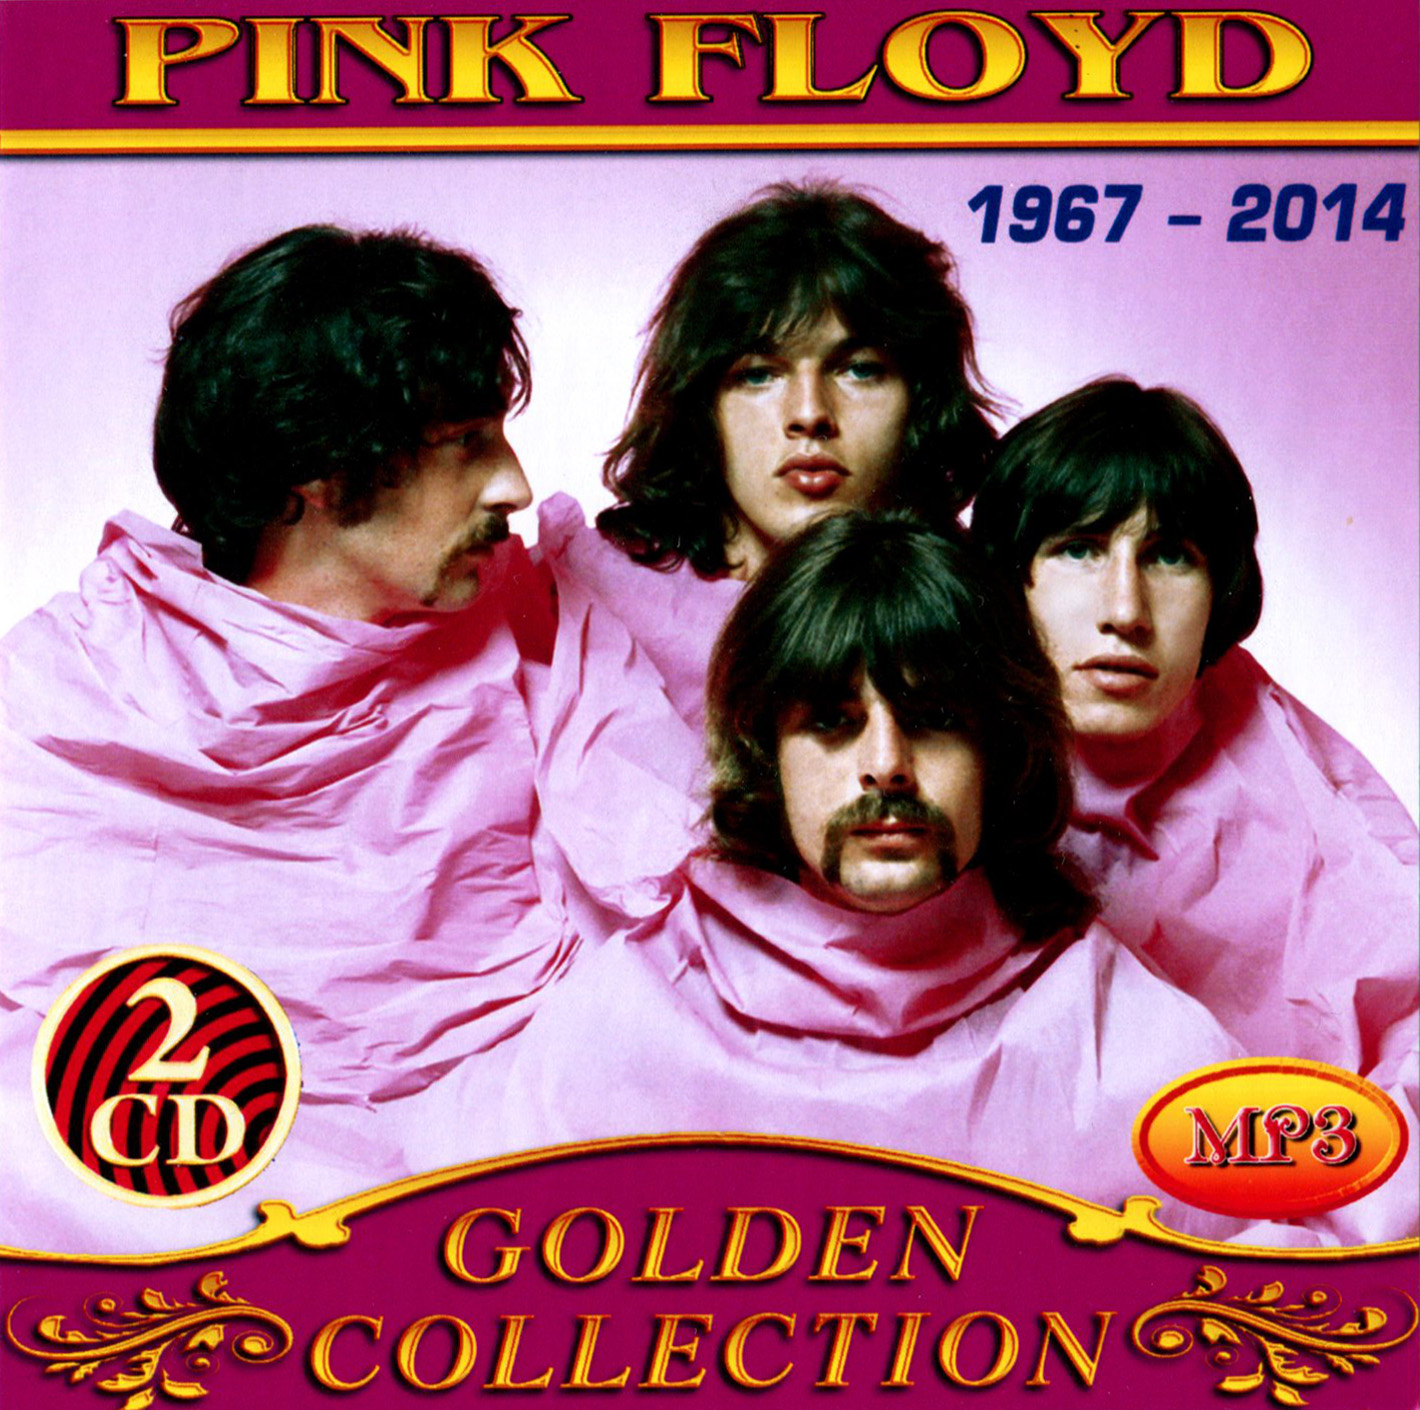 Pink Floyd 2cd [mp3]